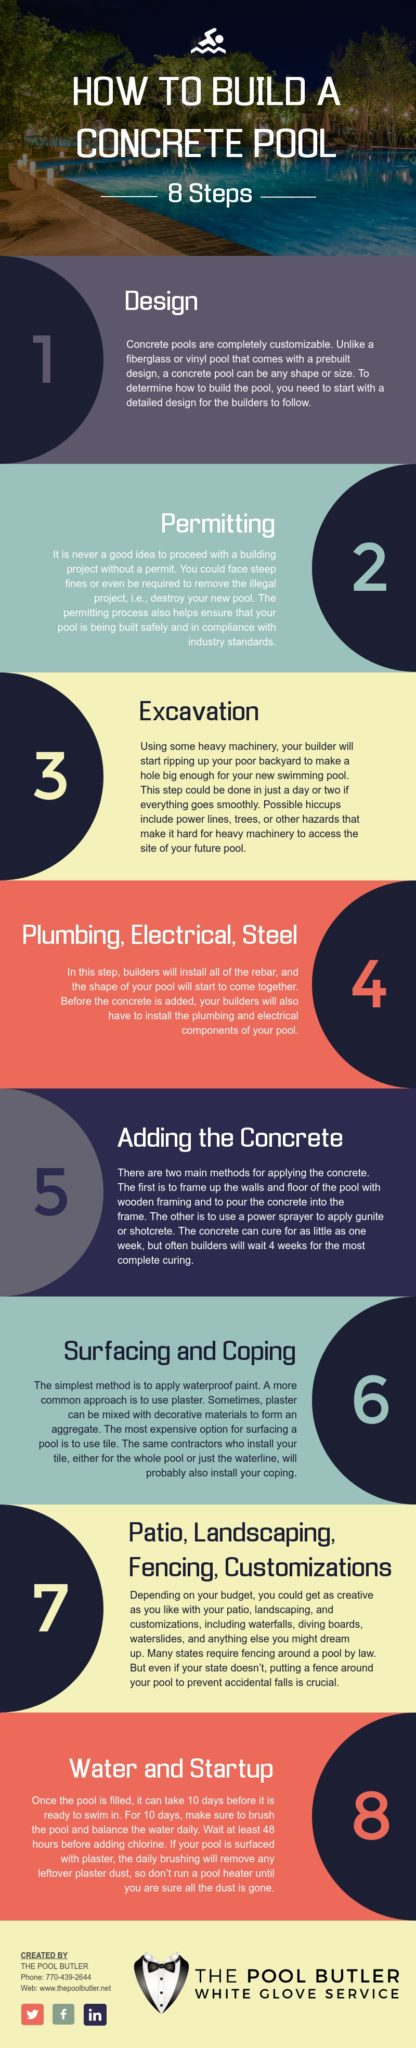 How to Build a Concrete Pool [infographic]